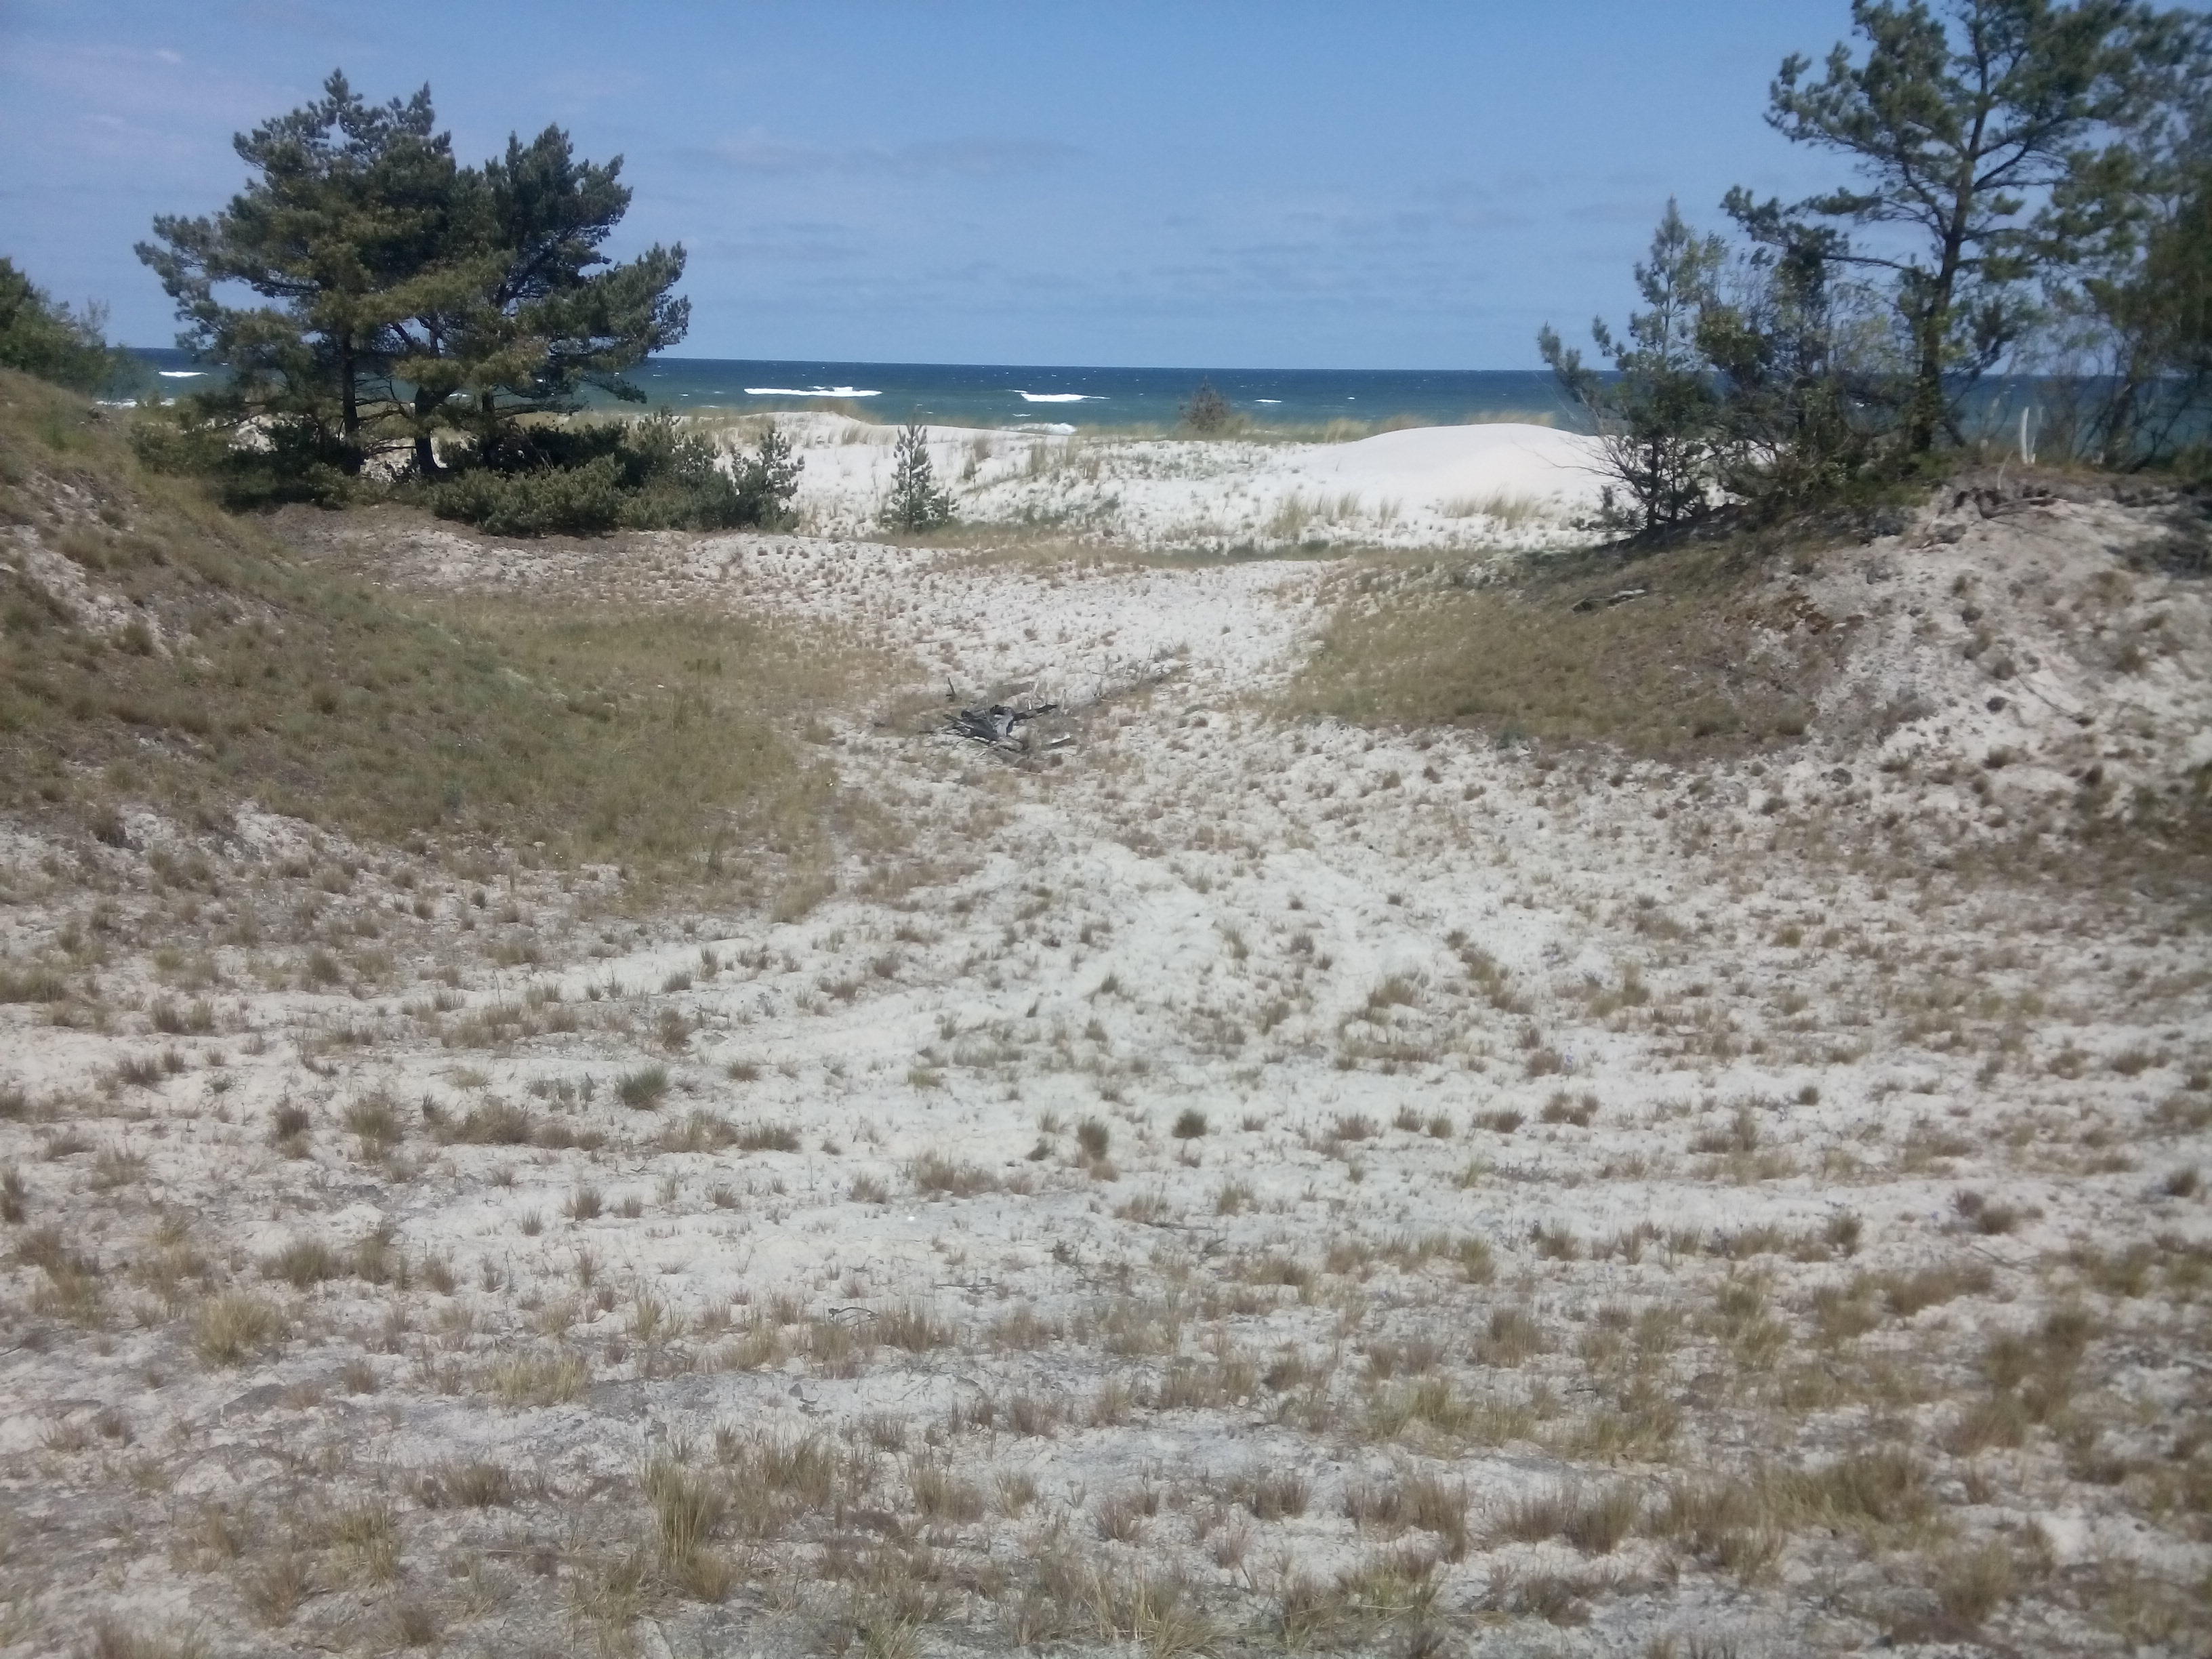 Grassy dunes with sea on the horizon